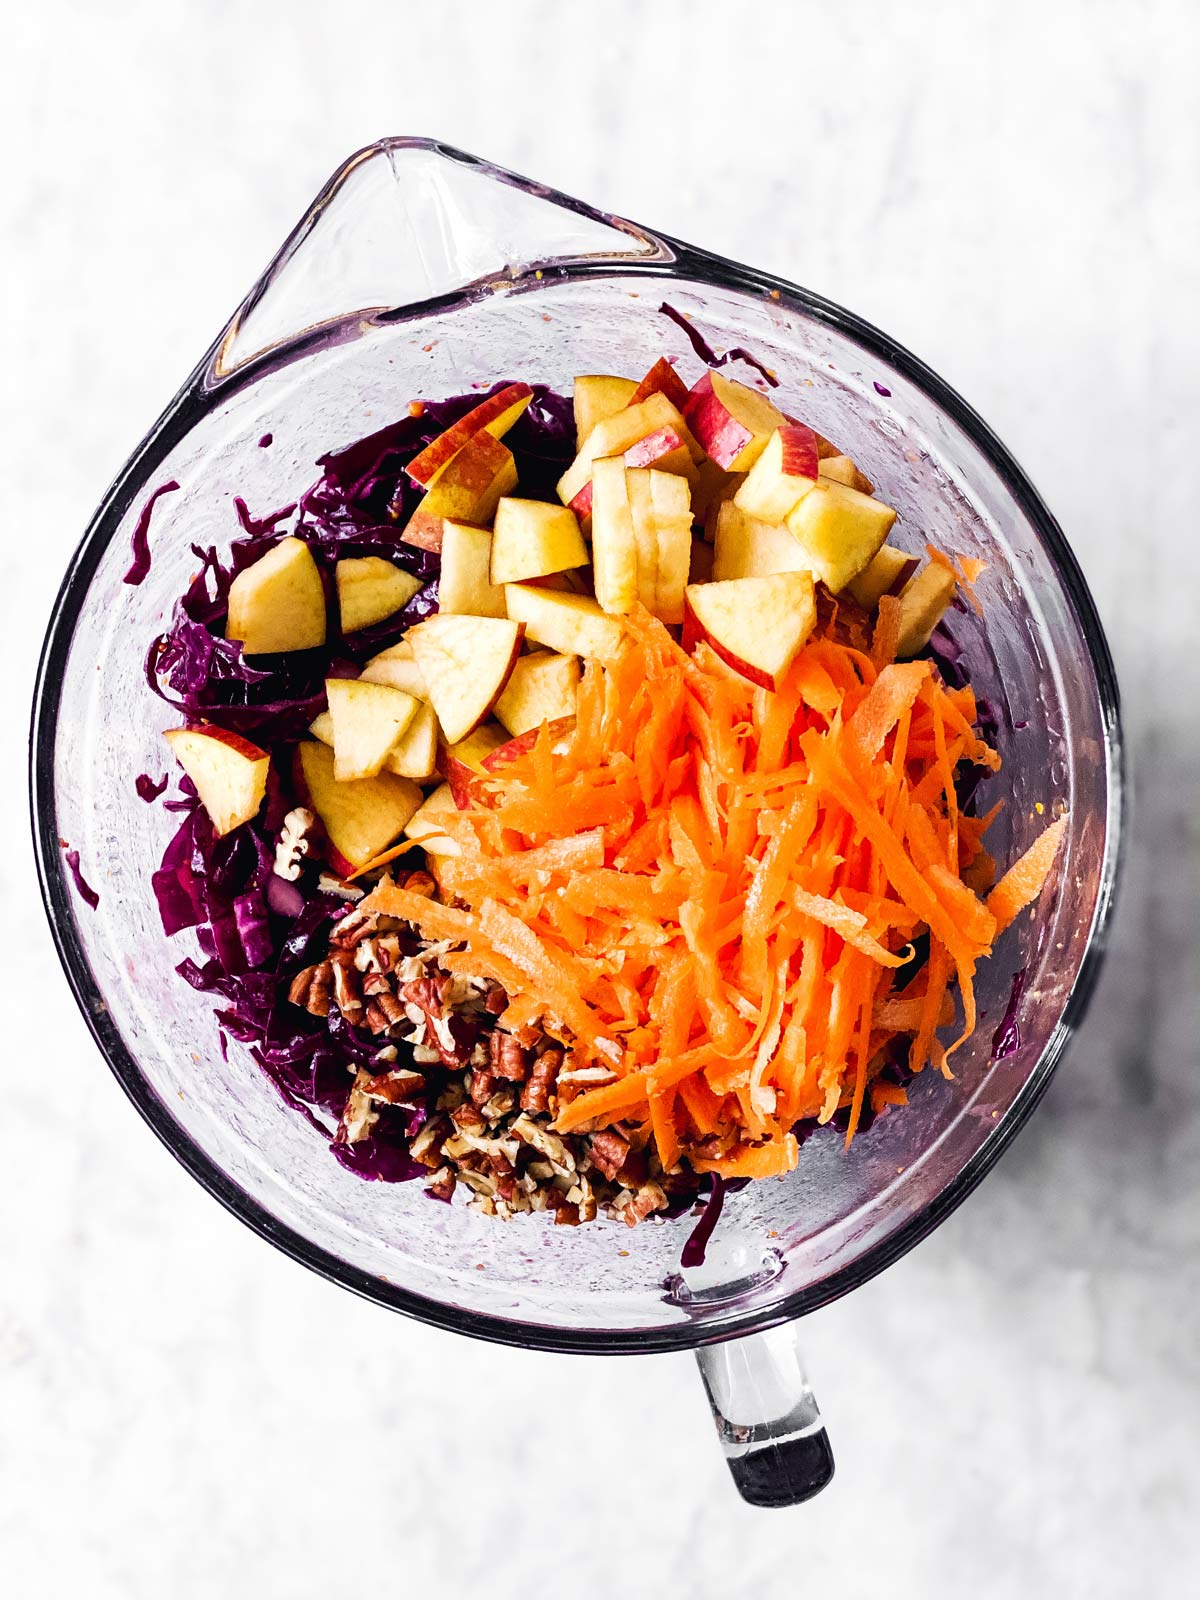 cut apples, chopped pecans and grated carrots on top of shredded red cabbage